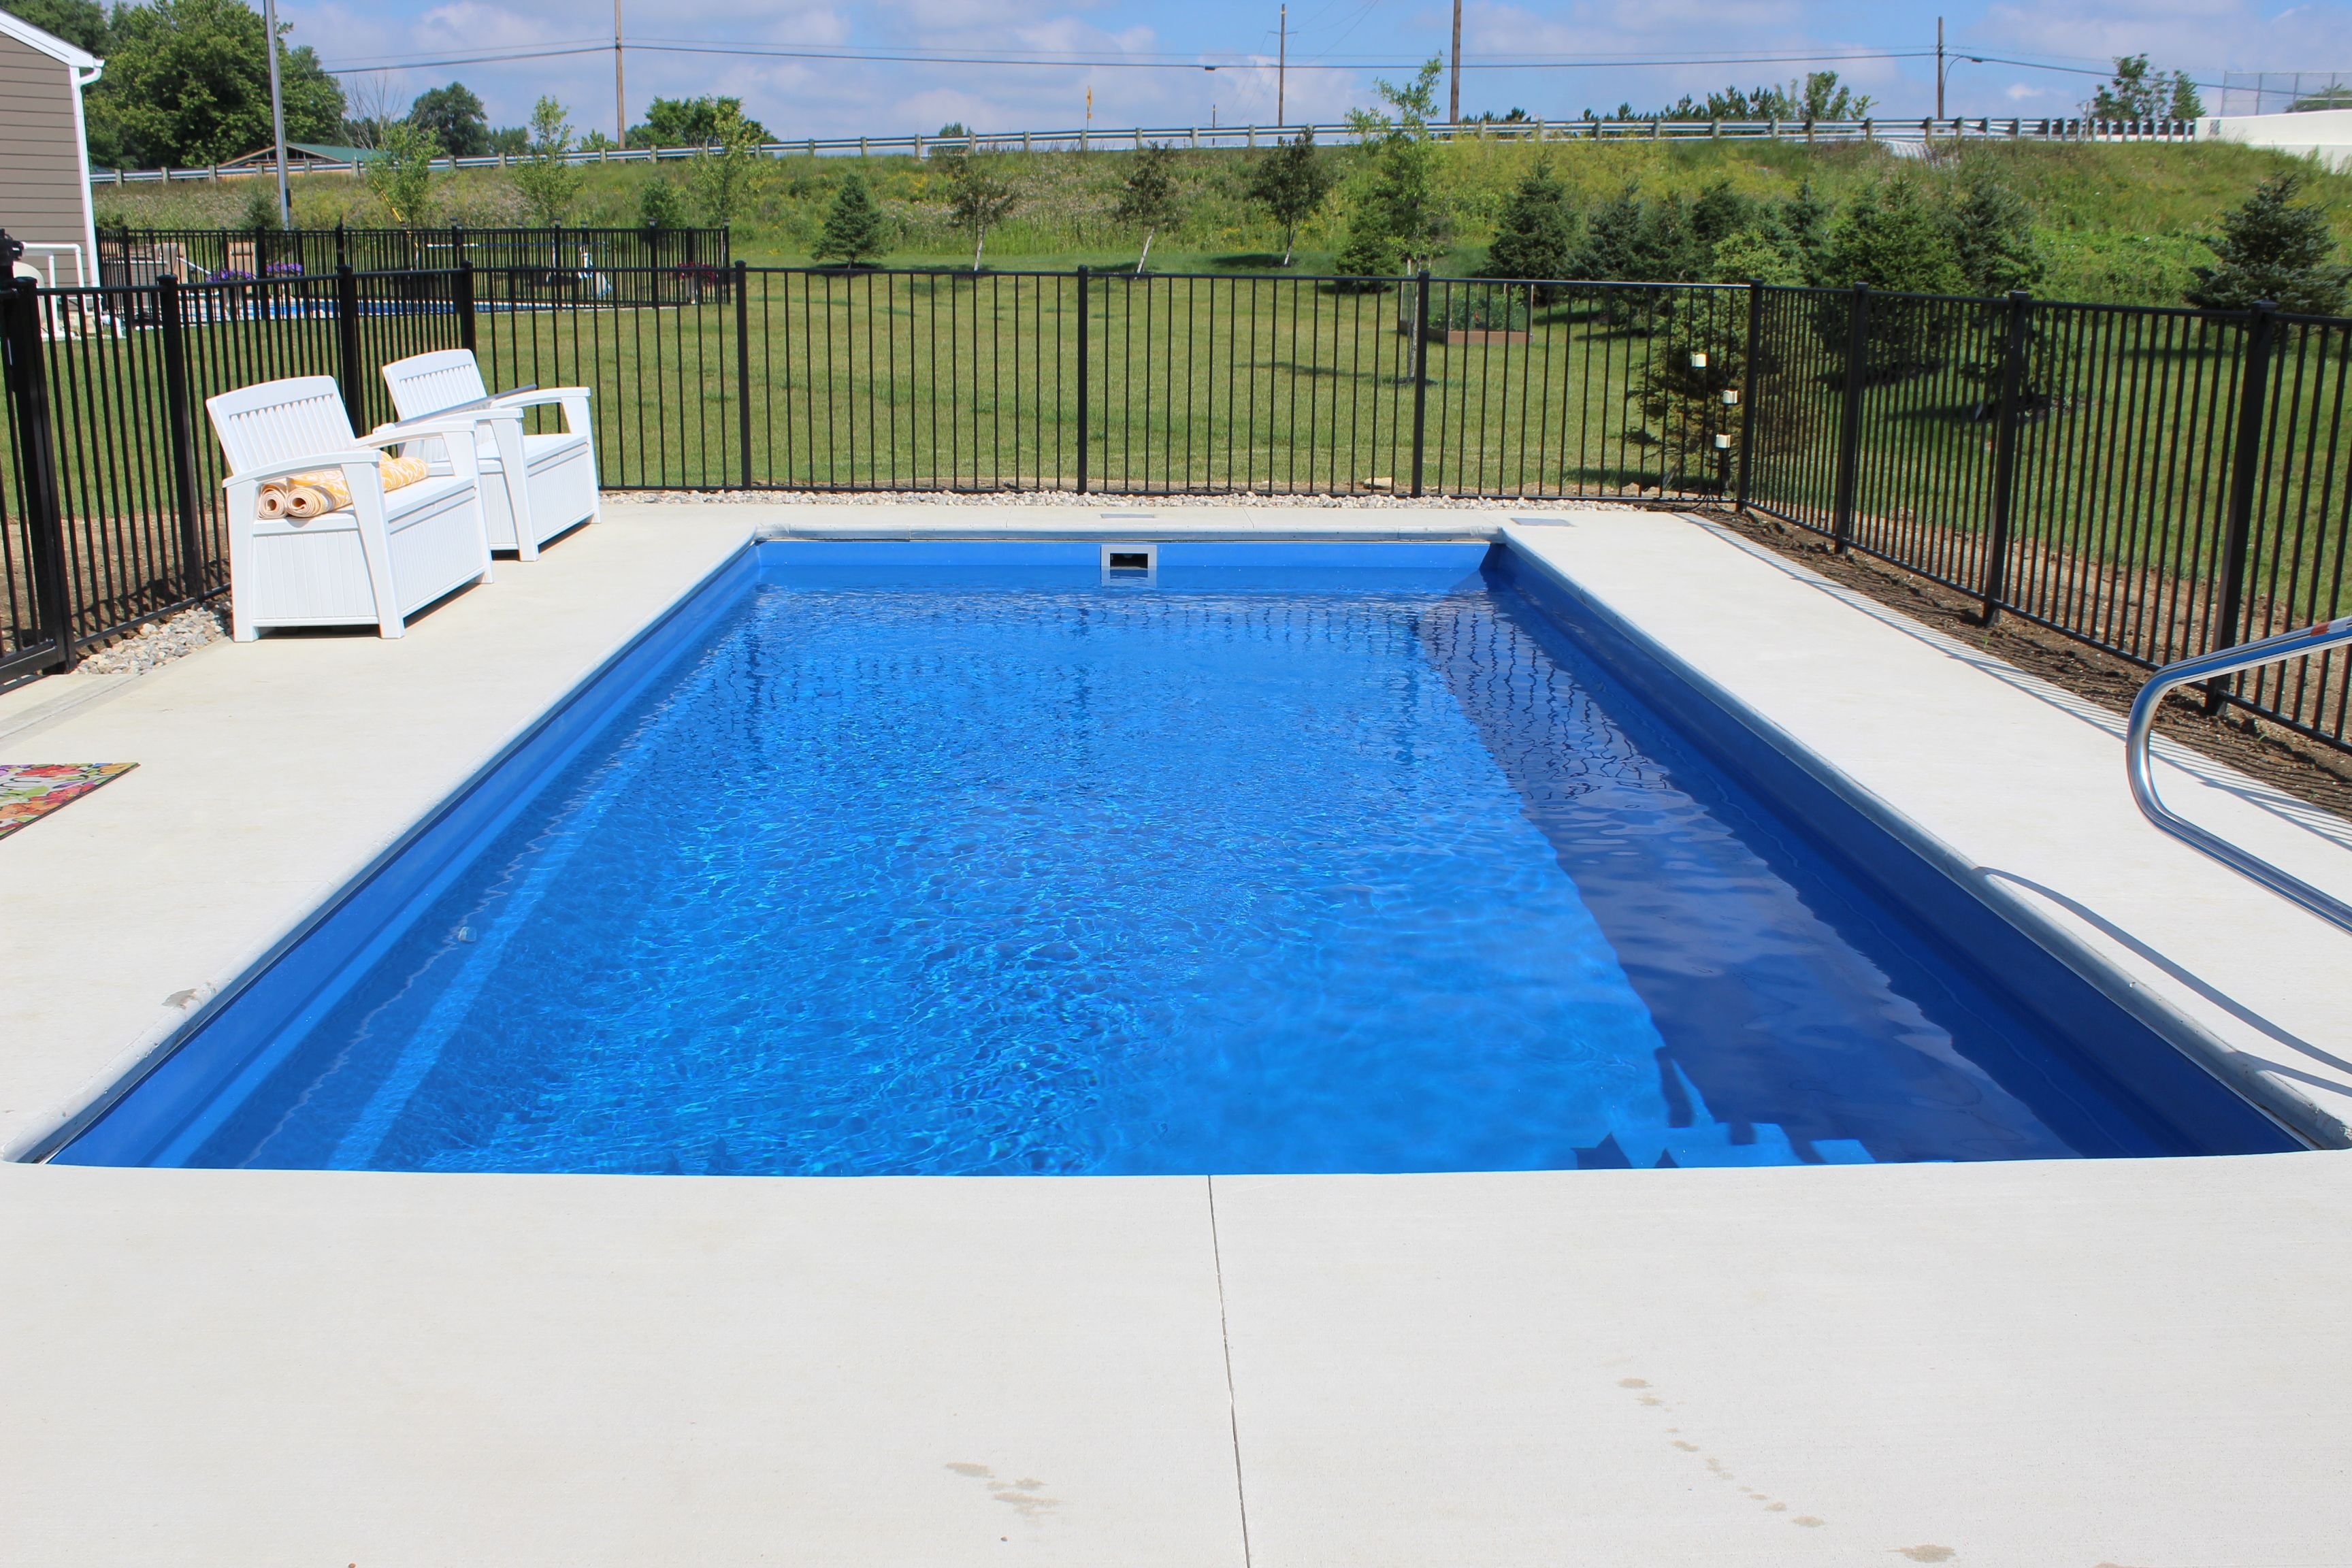 Imagine Pools Gives You The Freedom To Enjoy Life At Its Best The Owner Of This Ocean Blue Version Had Over Pool Fiberglass Swimming Pools Swimming Pools